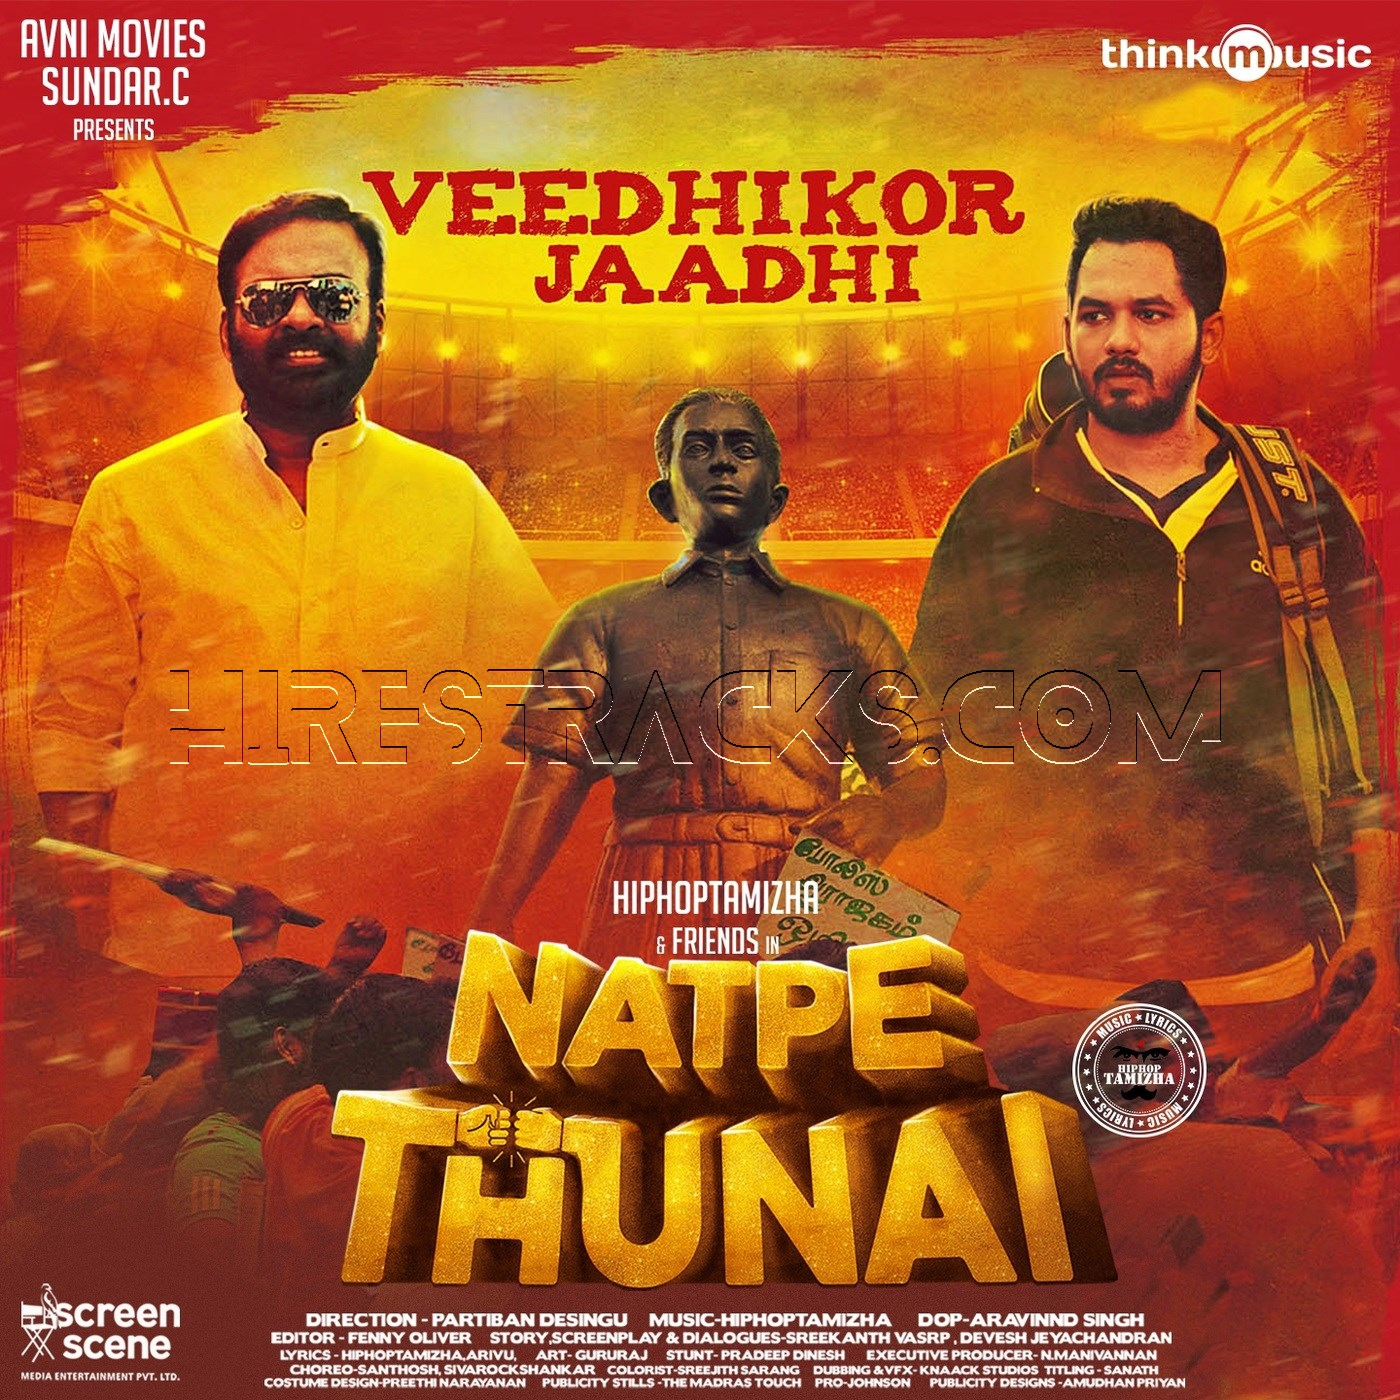 Veedhikor Jaadhi (From Natpe Thunai) – Single (2019)